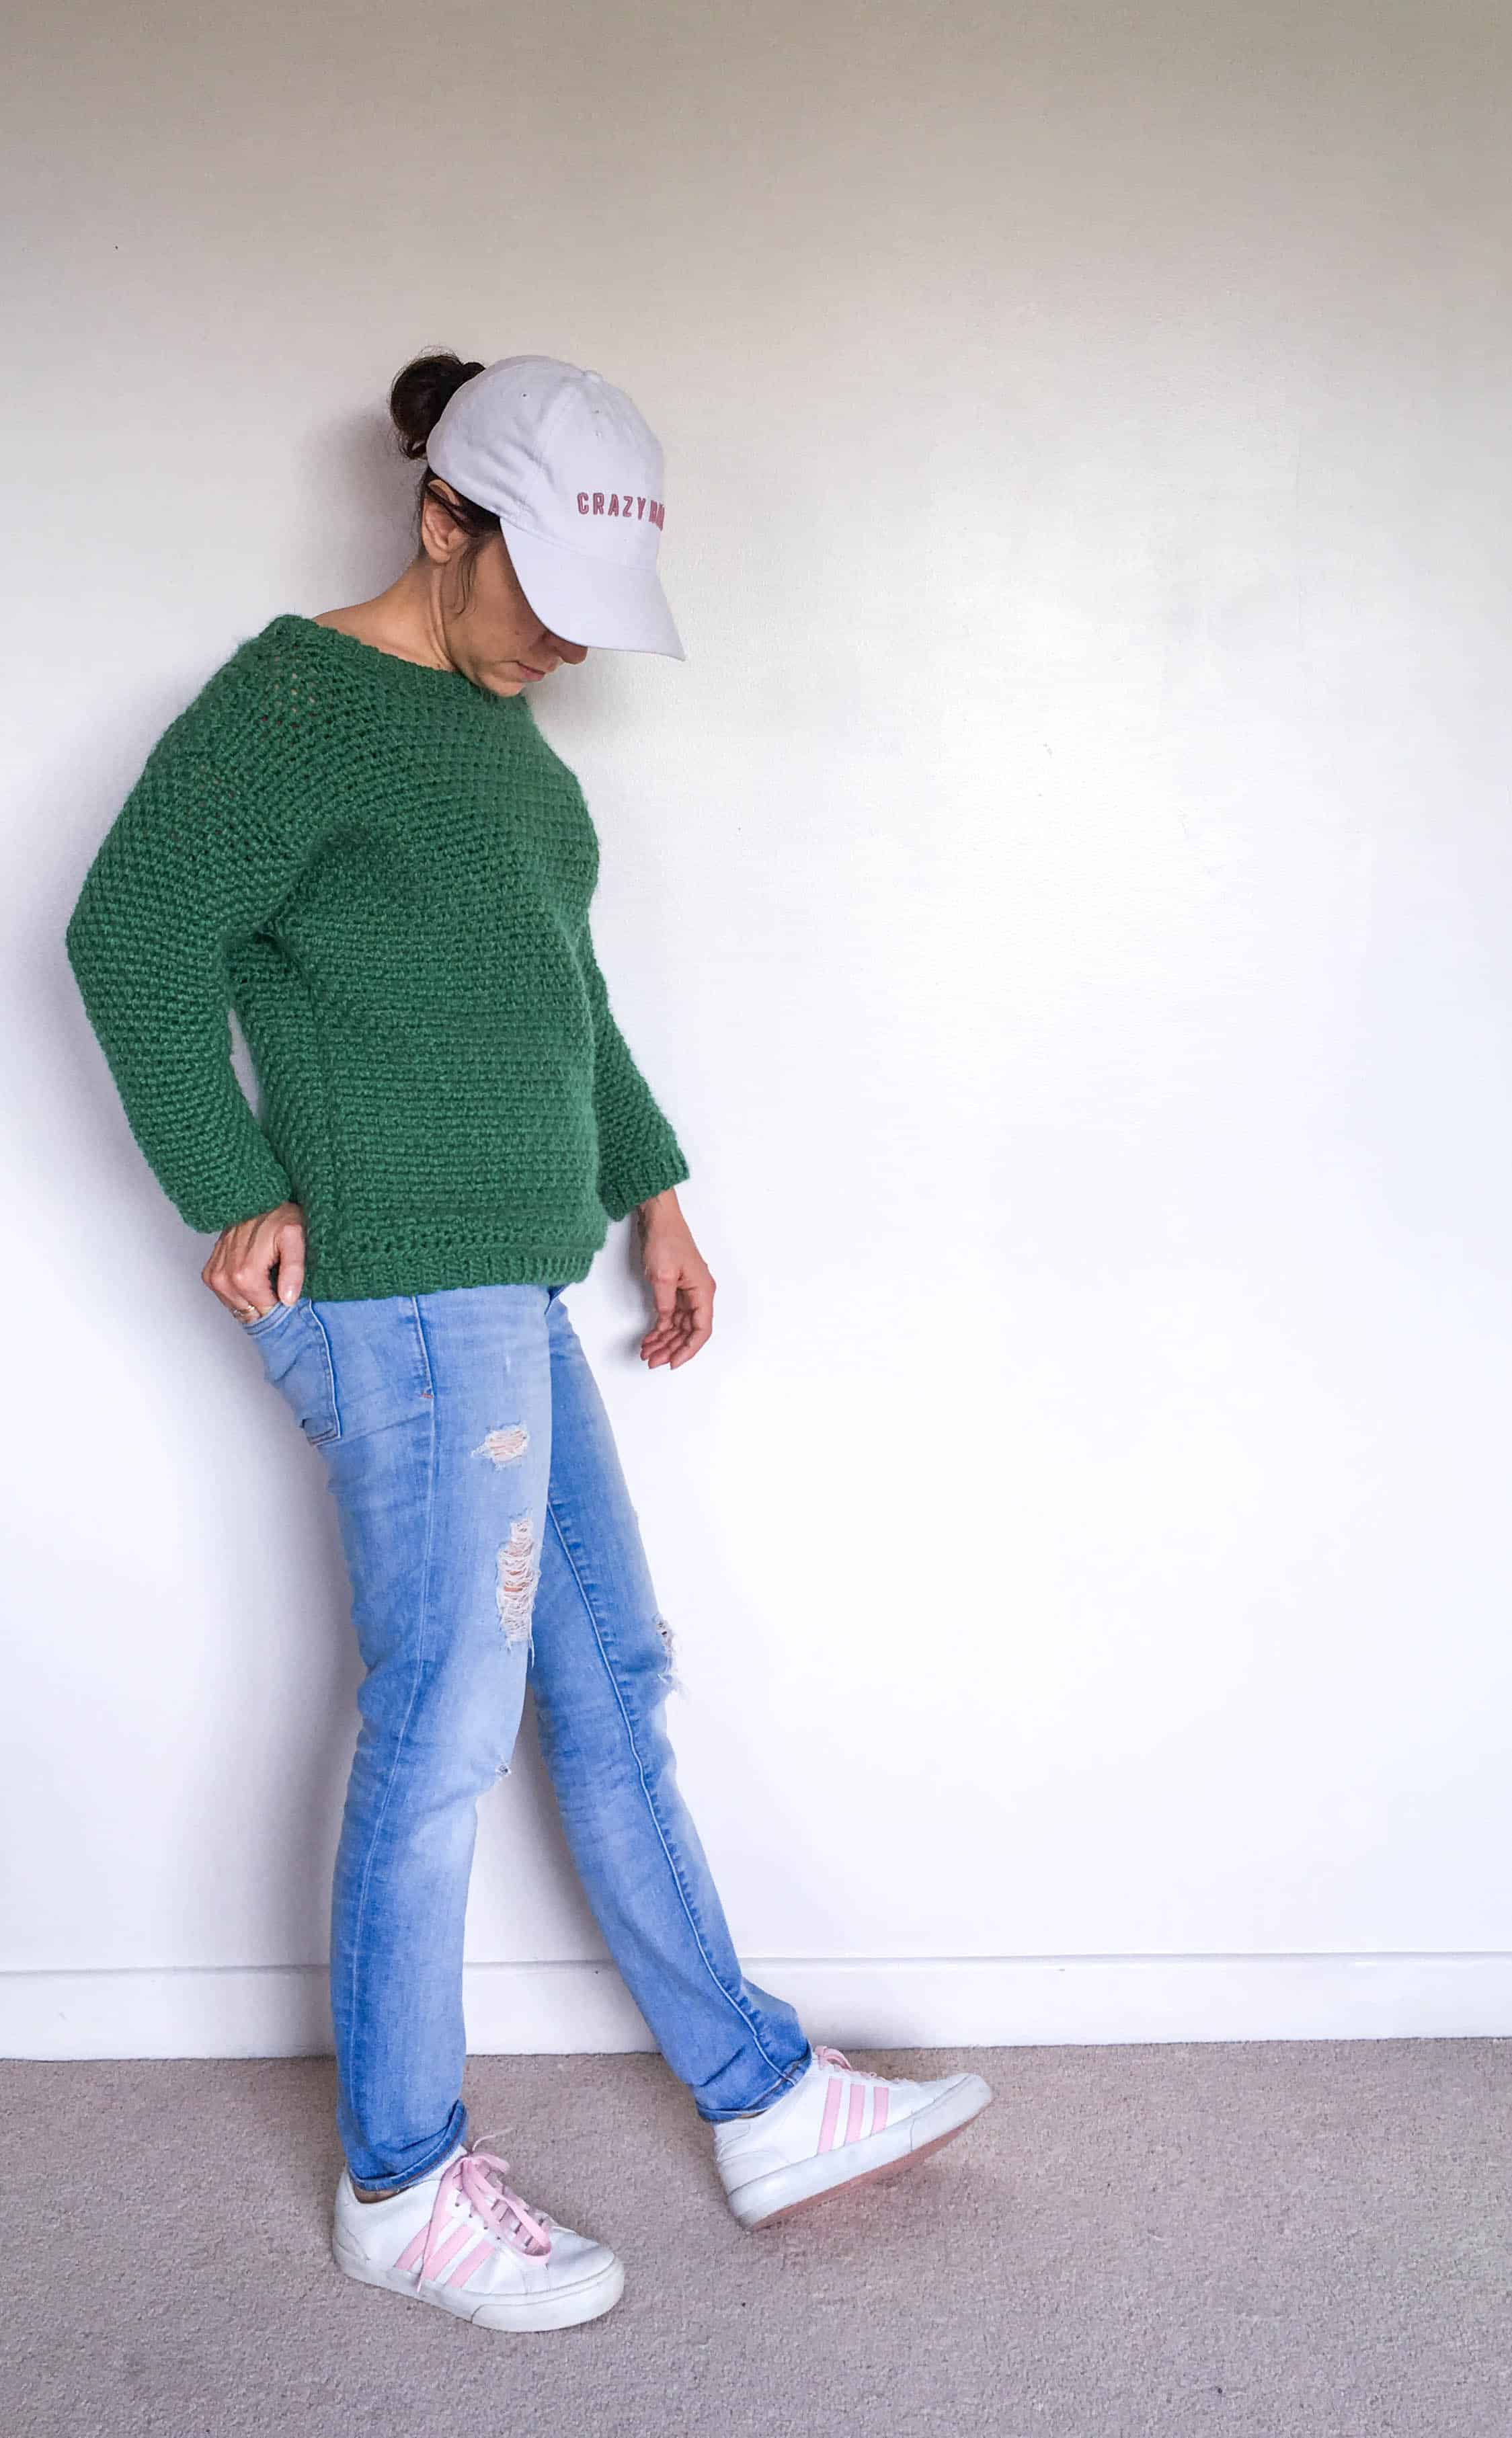 off-the-shoulder retro Crochet Sweater Pattern inspired by stranger things